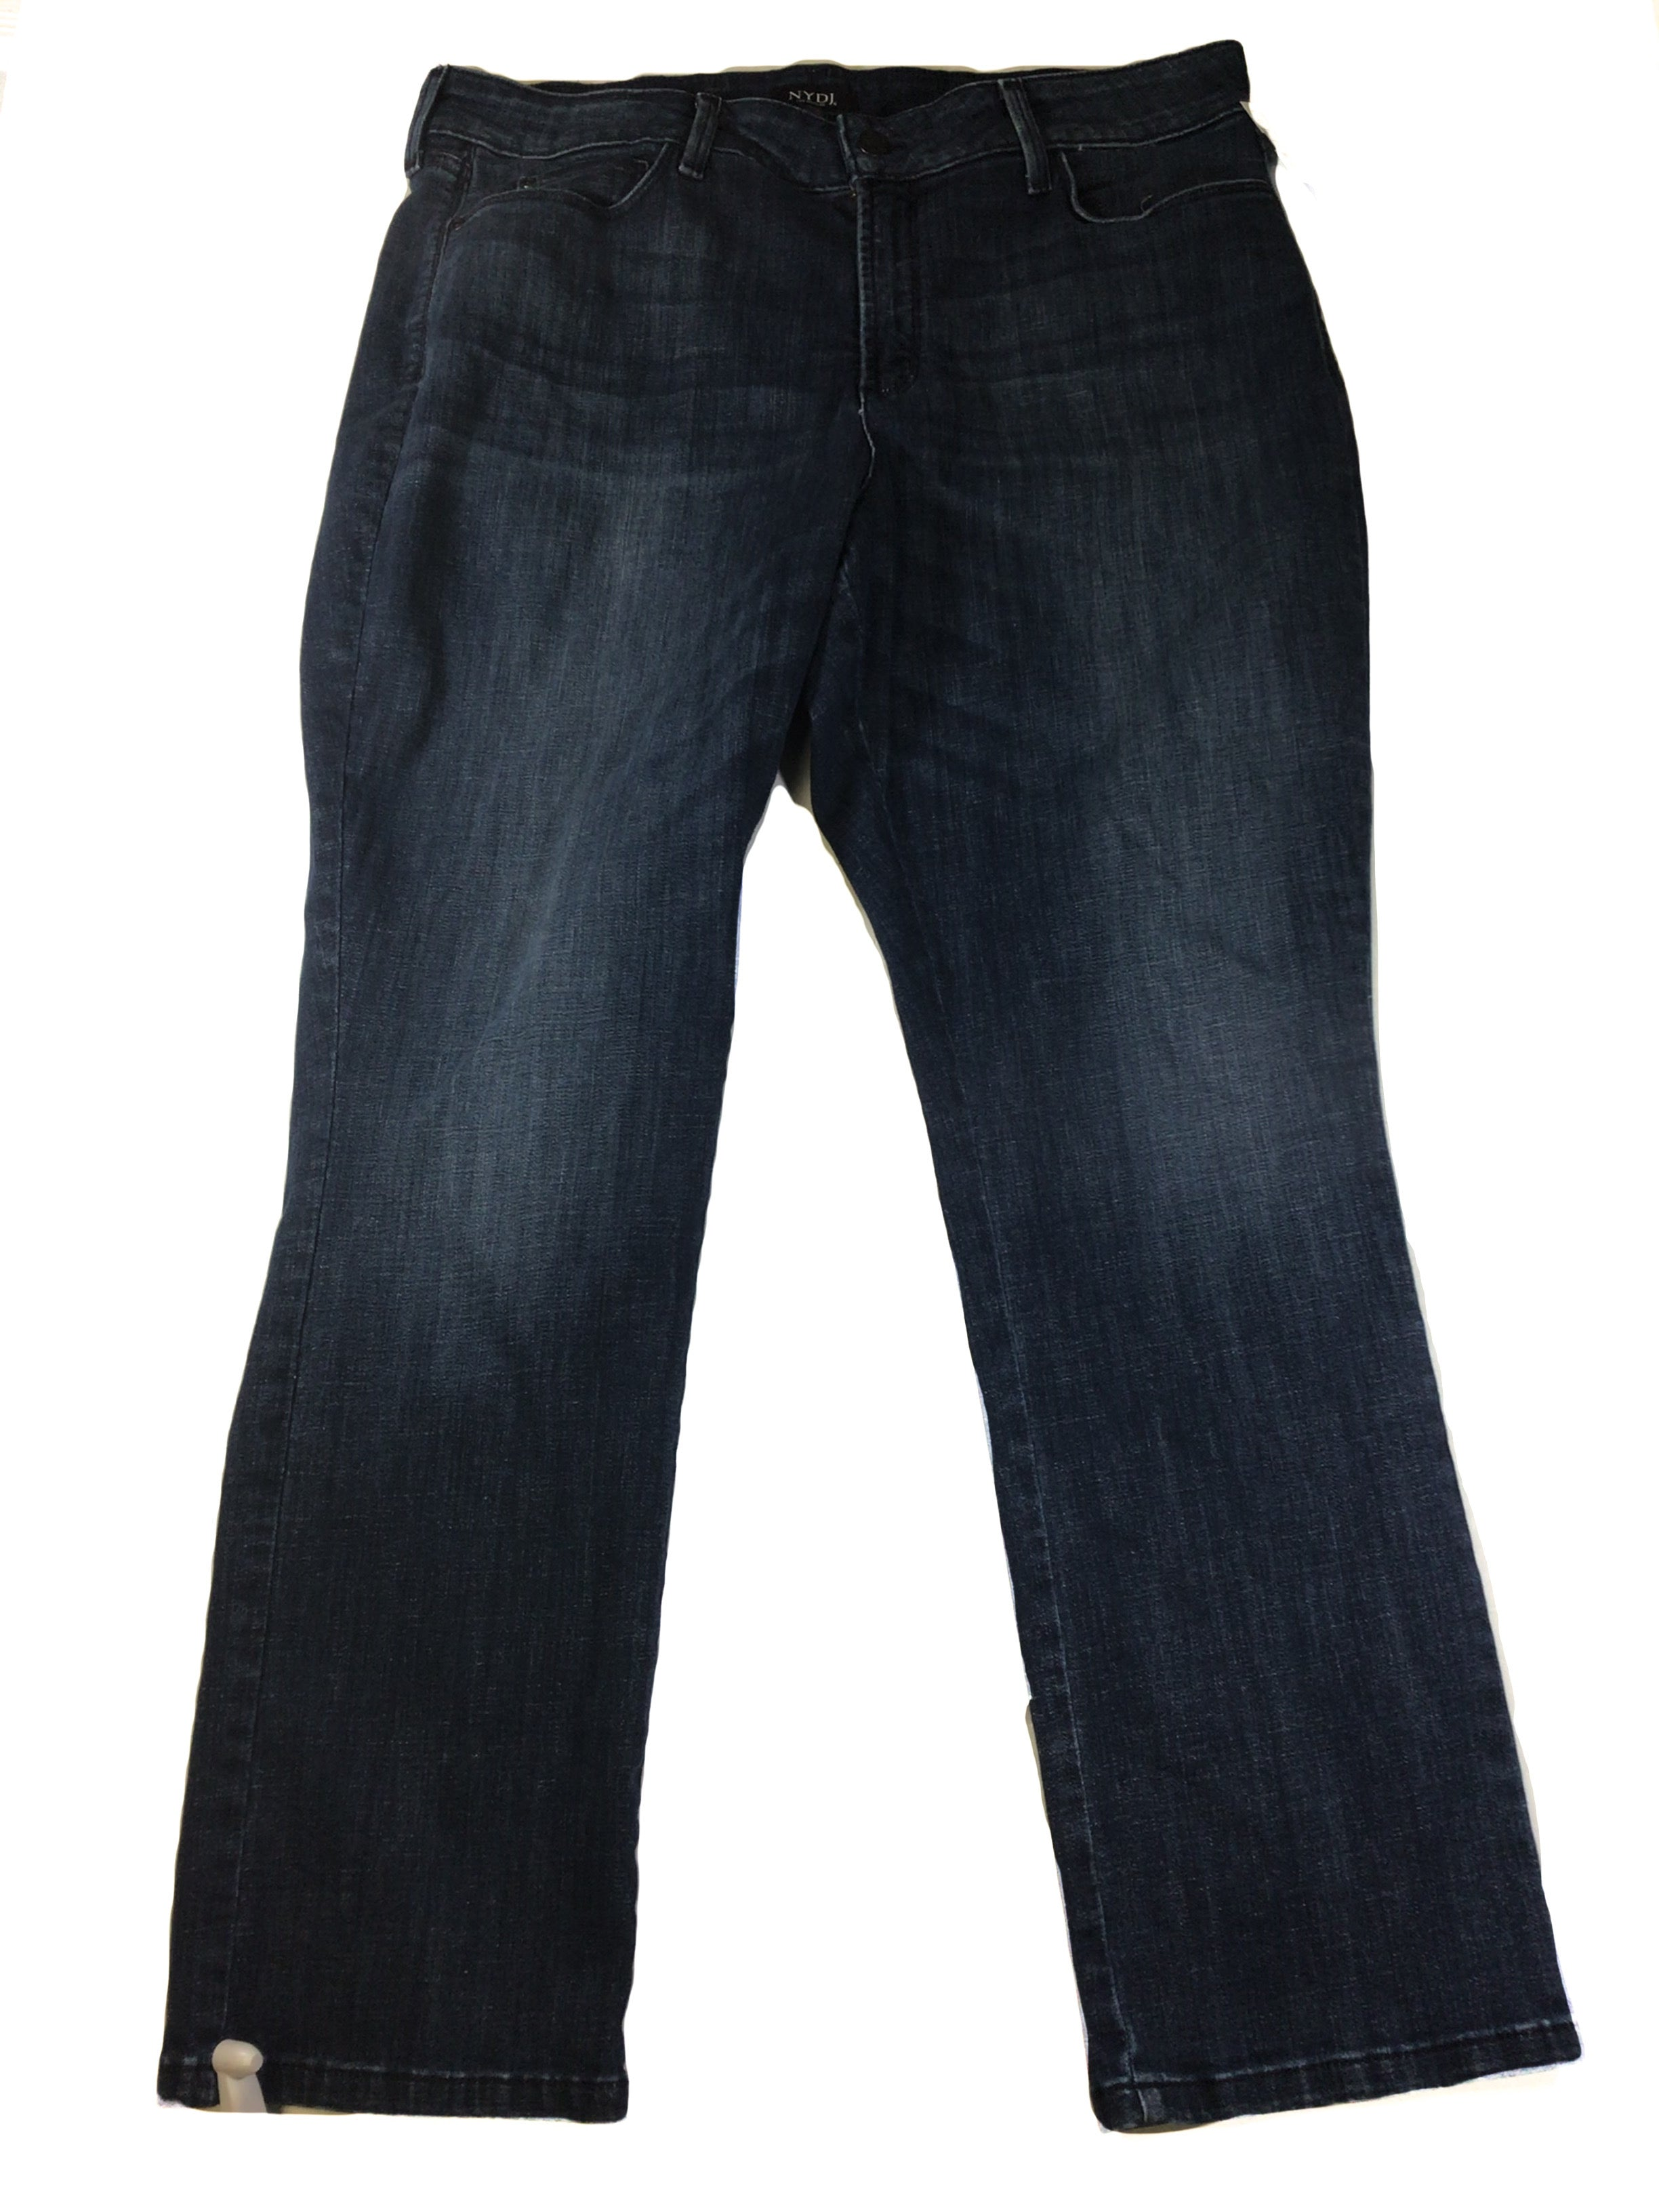 Primary Photo - BRAND: NOT YOUR DAUGHTERS JEANS O <BR>STYLE: JEANS <BR>COLOR: DENIM <BR>SIZE: 16 <BR>SKU: 213-213118-31885